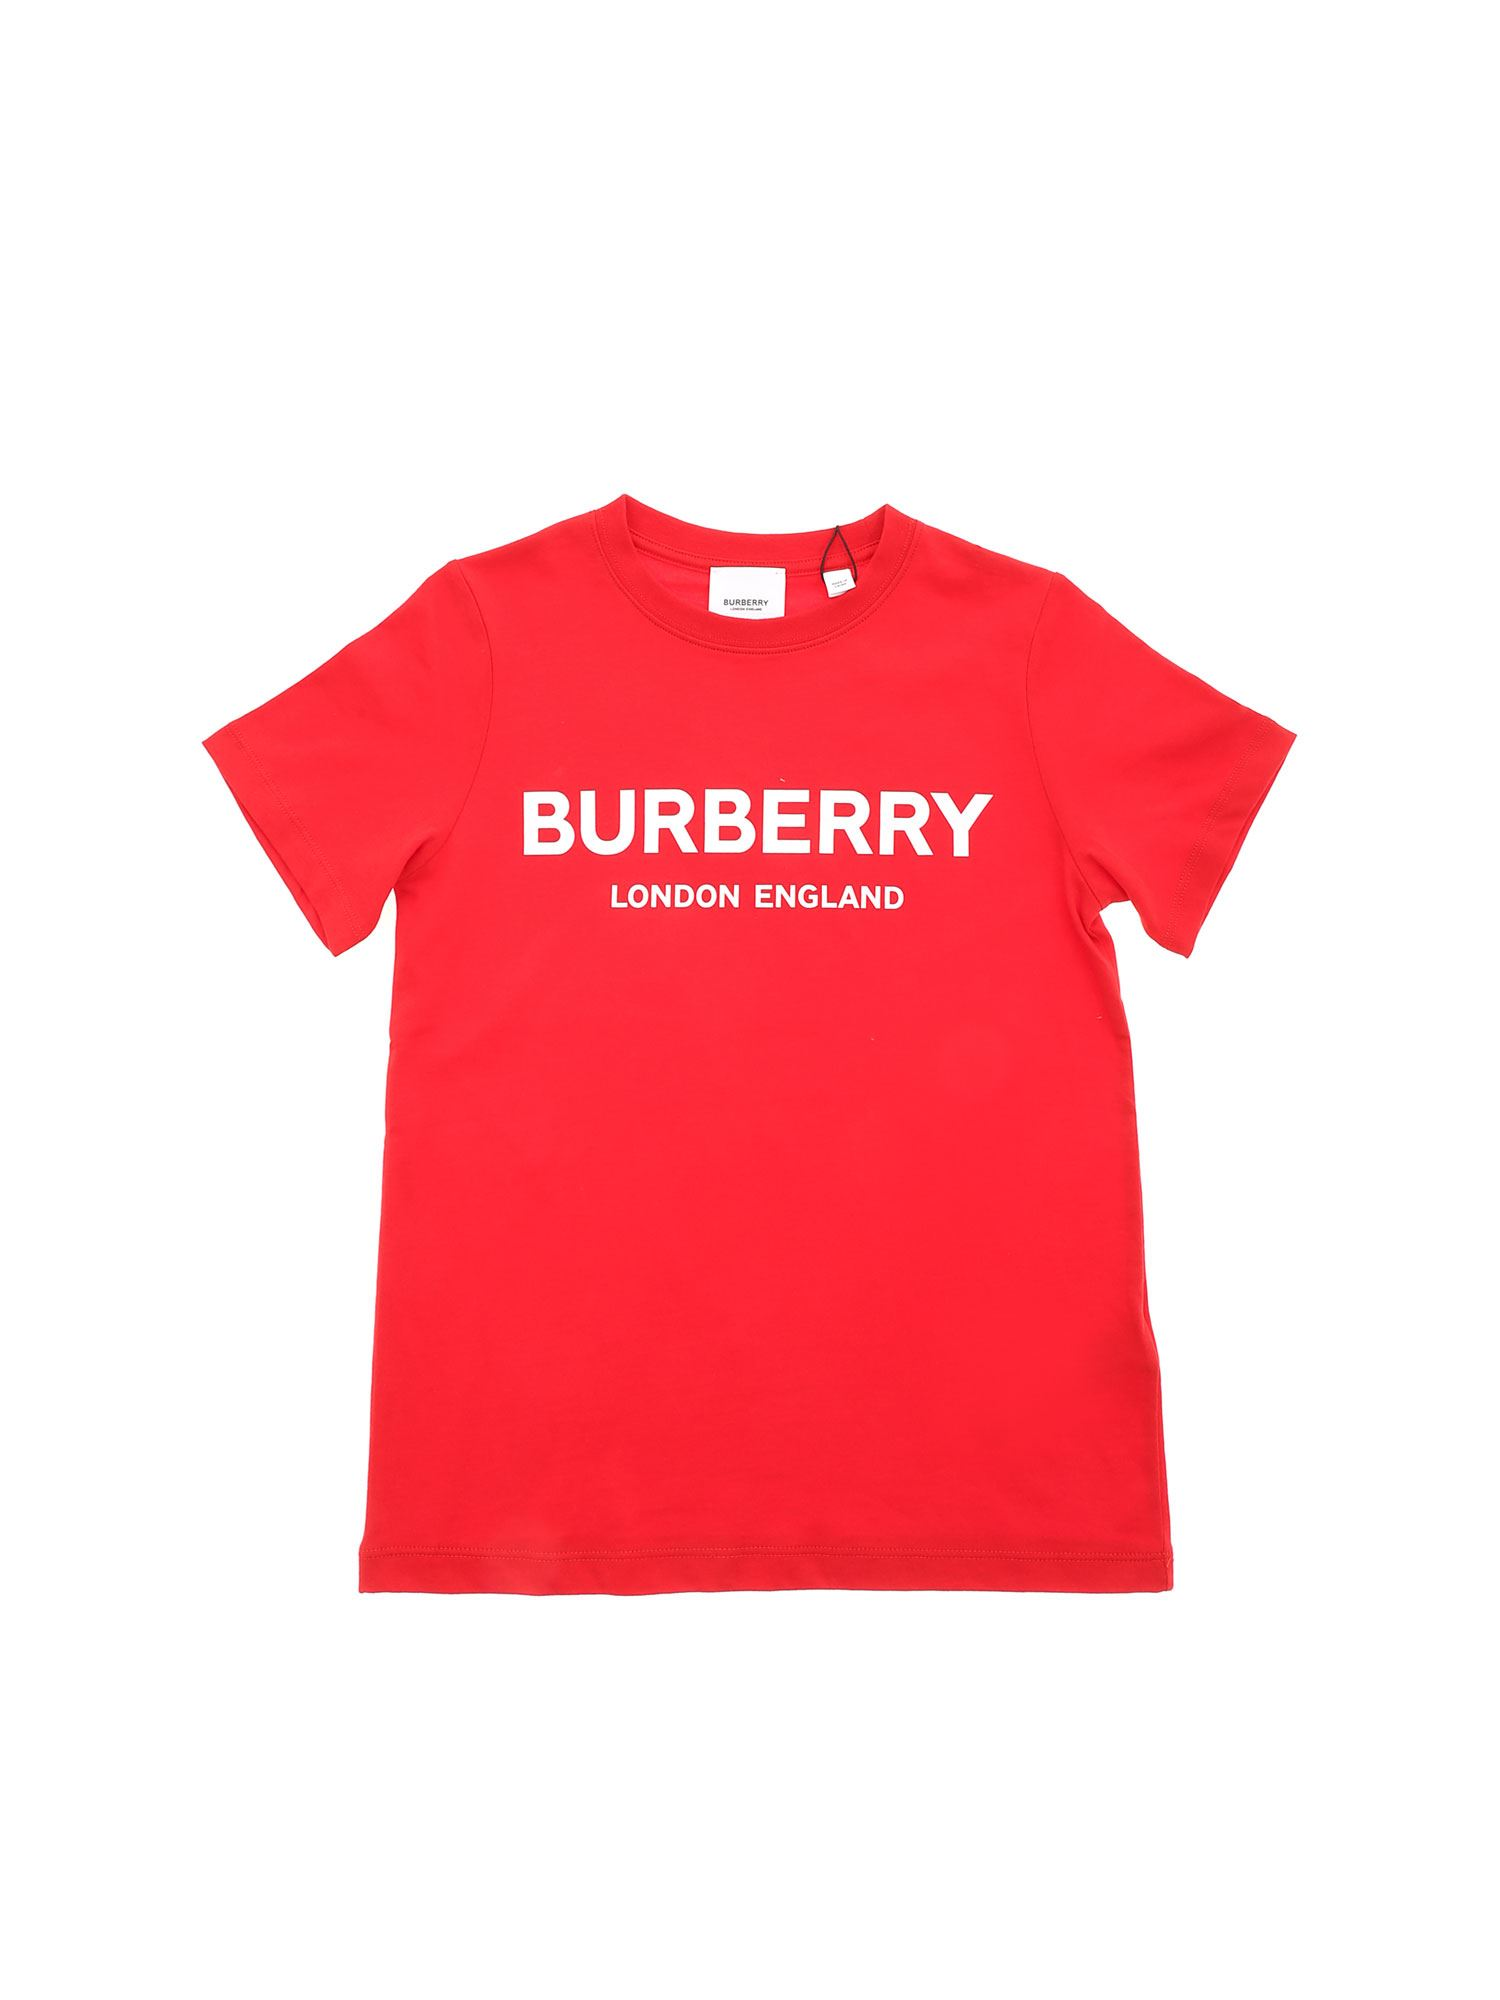 Burberry Kids' Robbie T-shirt In Red With White Logo